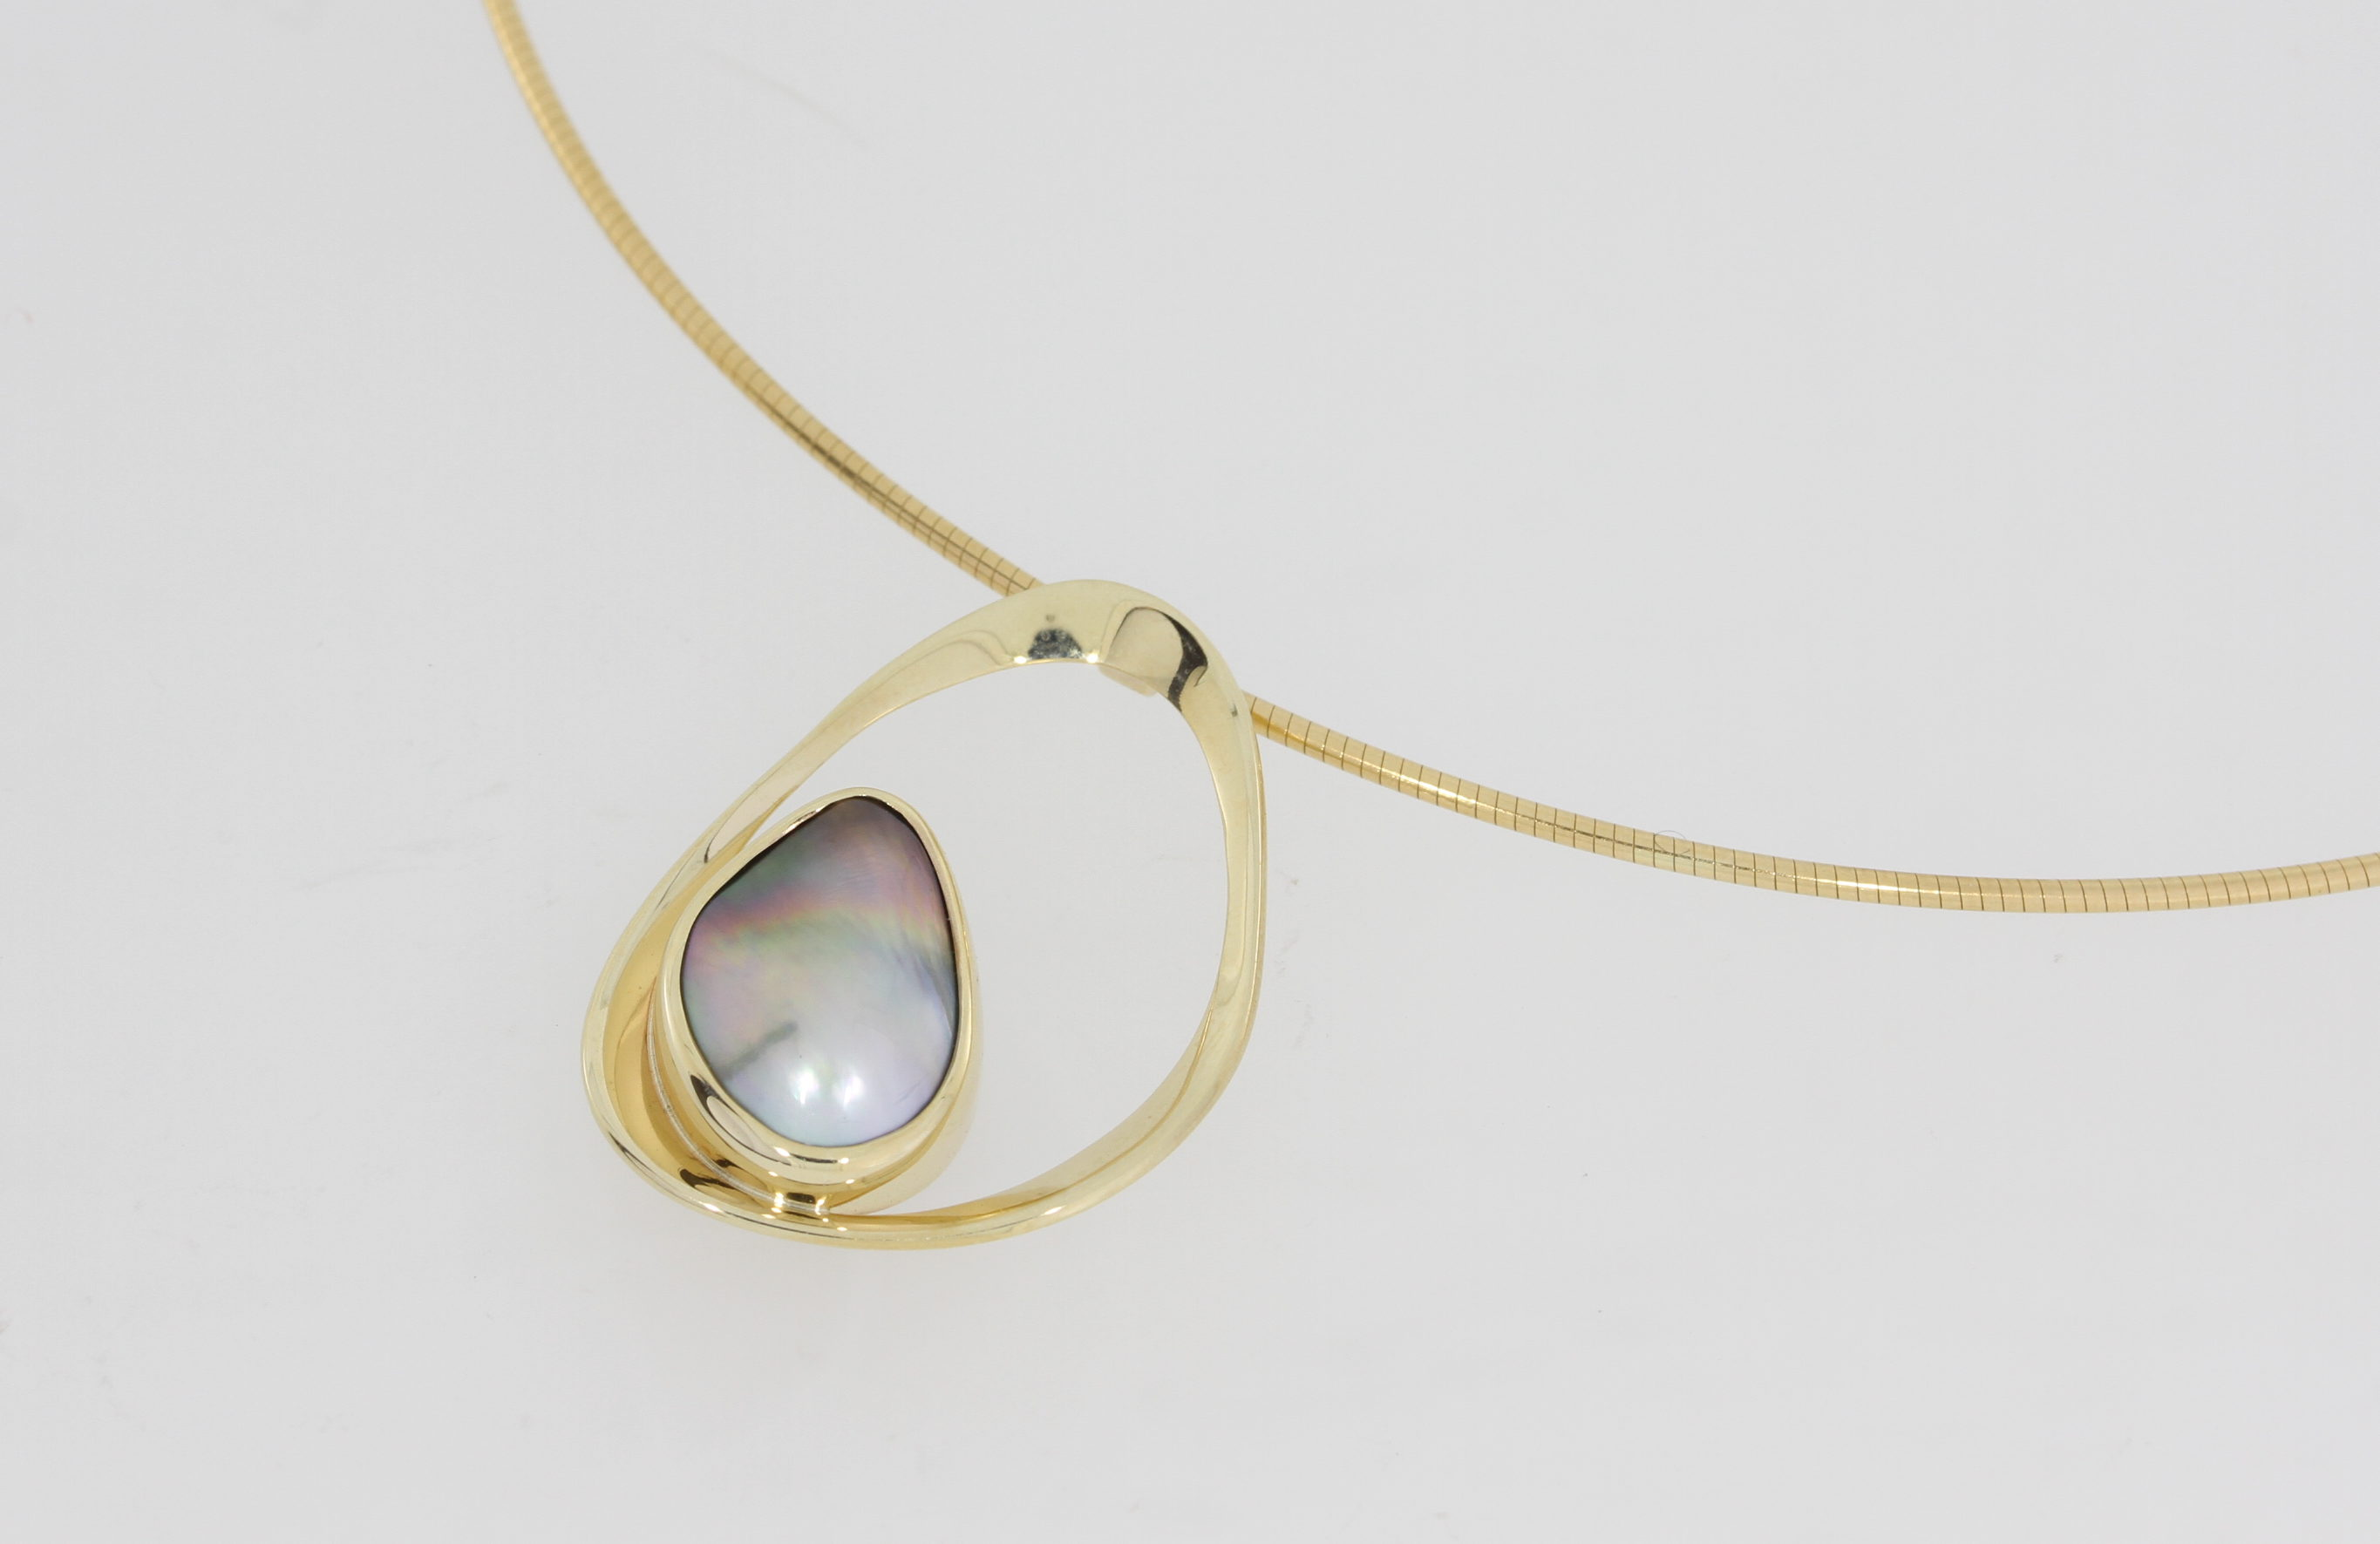 Payet Abrolhos Island pearl and gold pendant